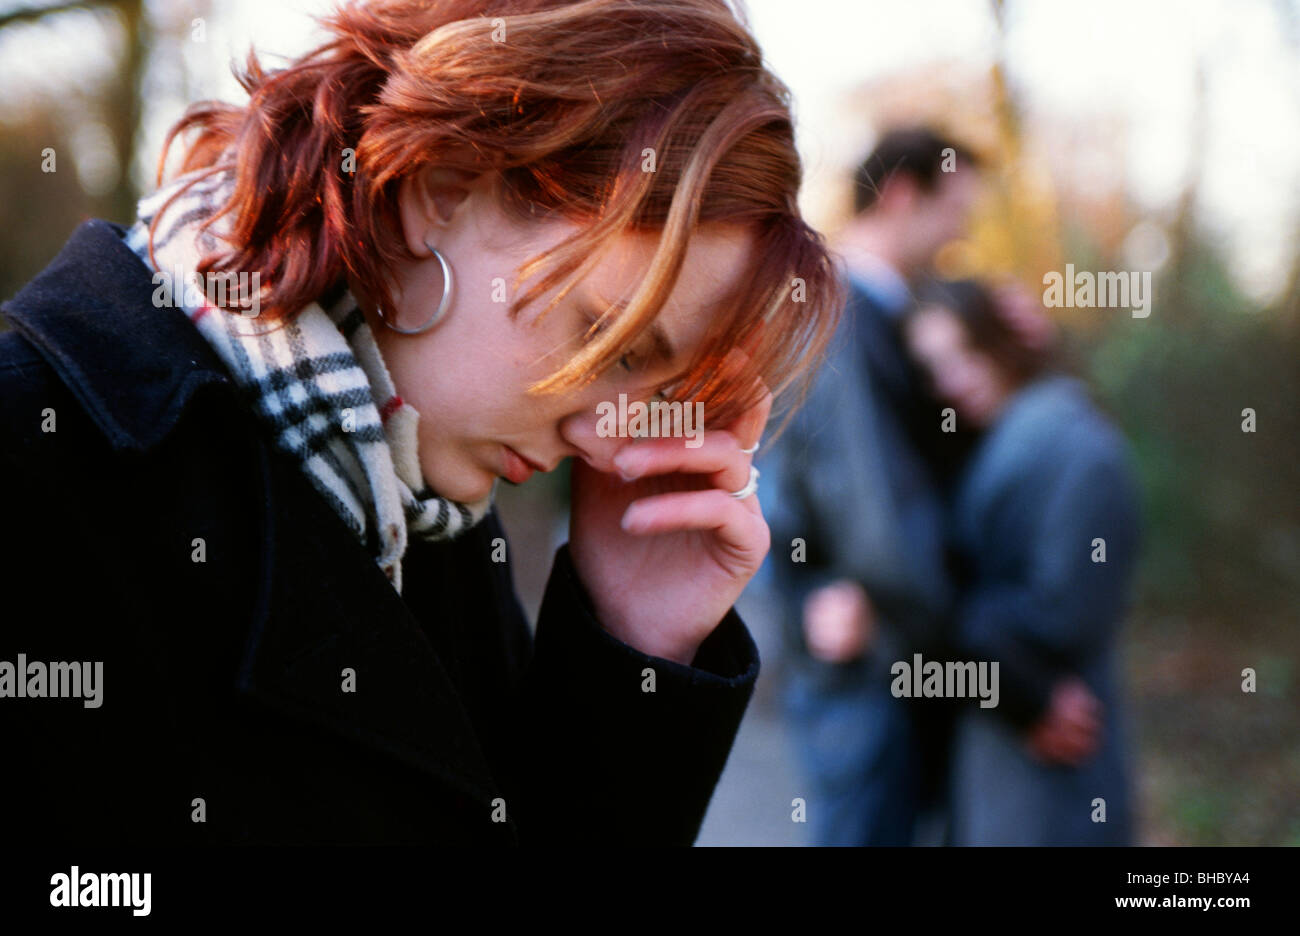 Heart broken  young woman outside and couple comforting in the background. - Stock Image